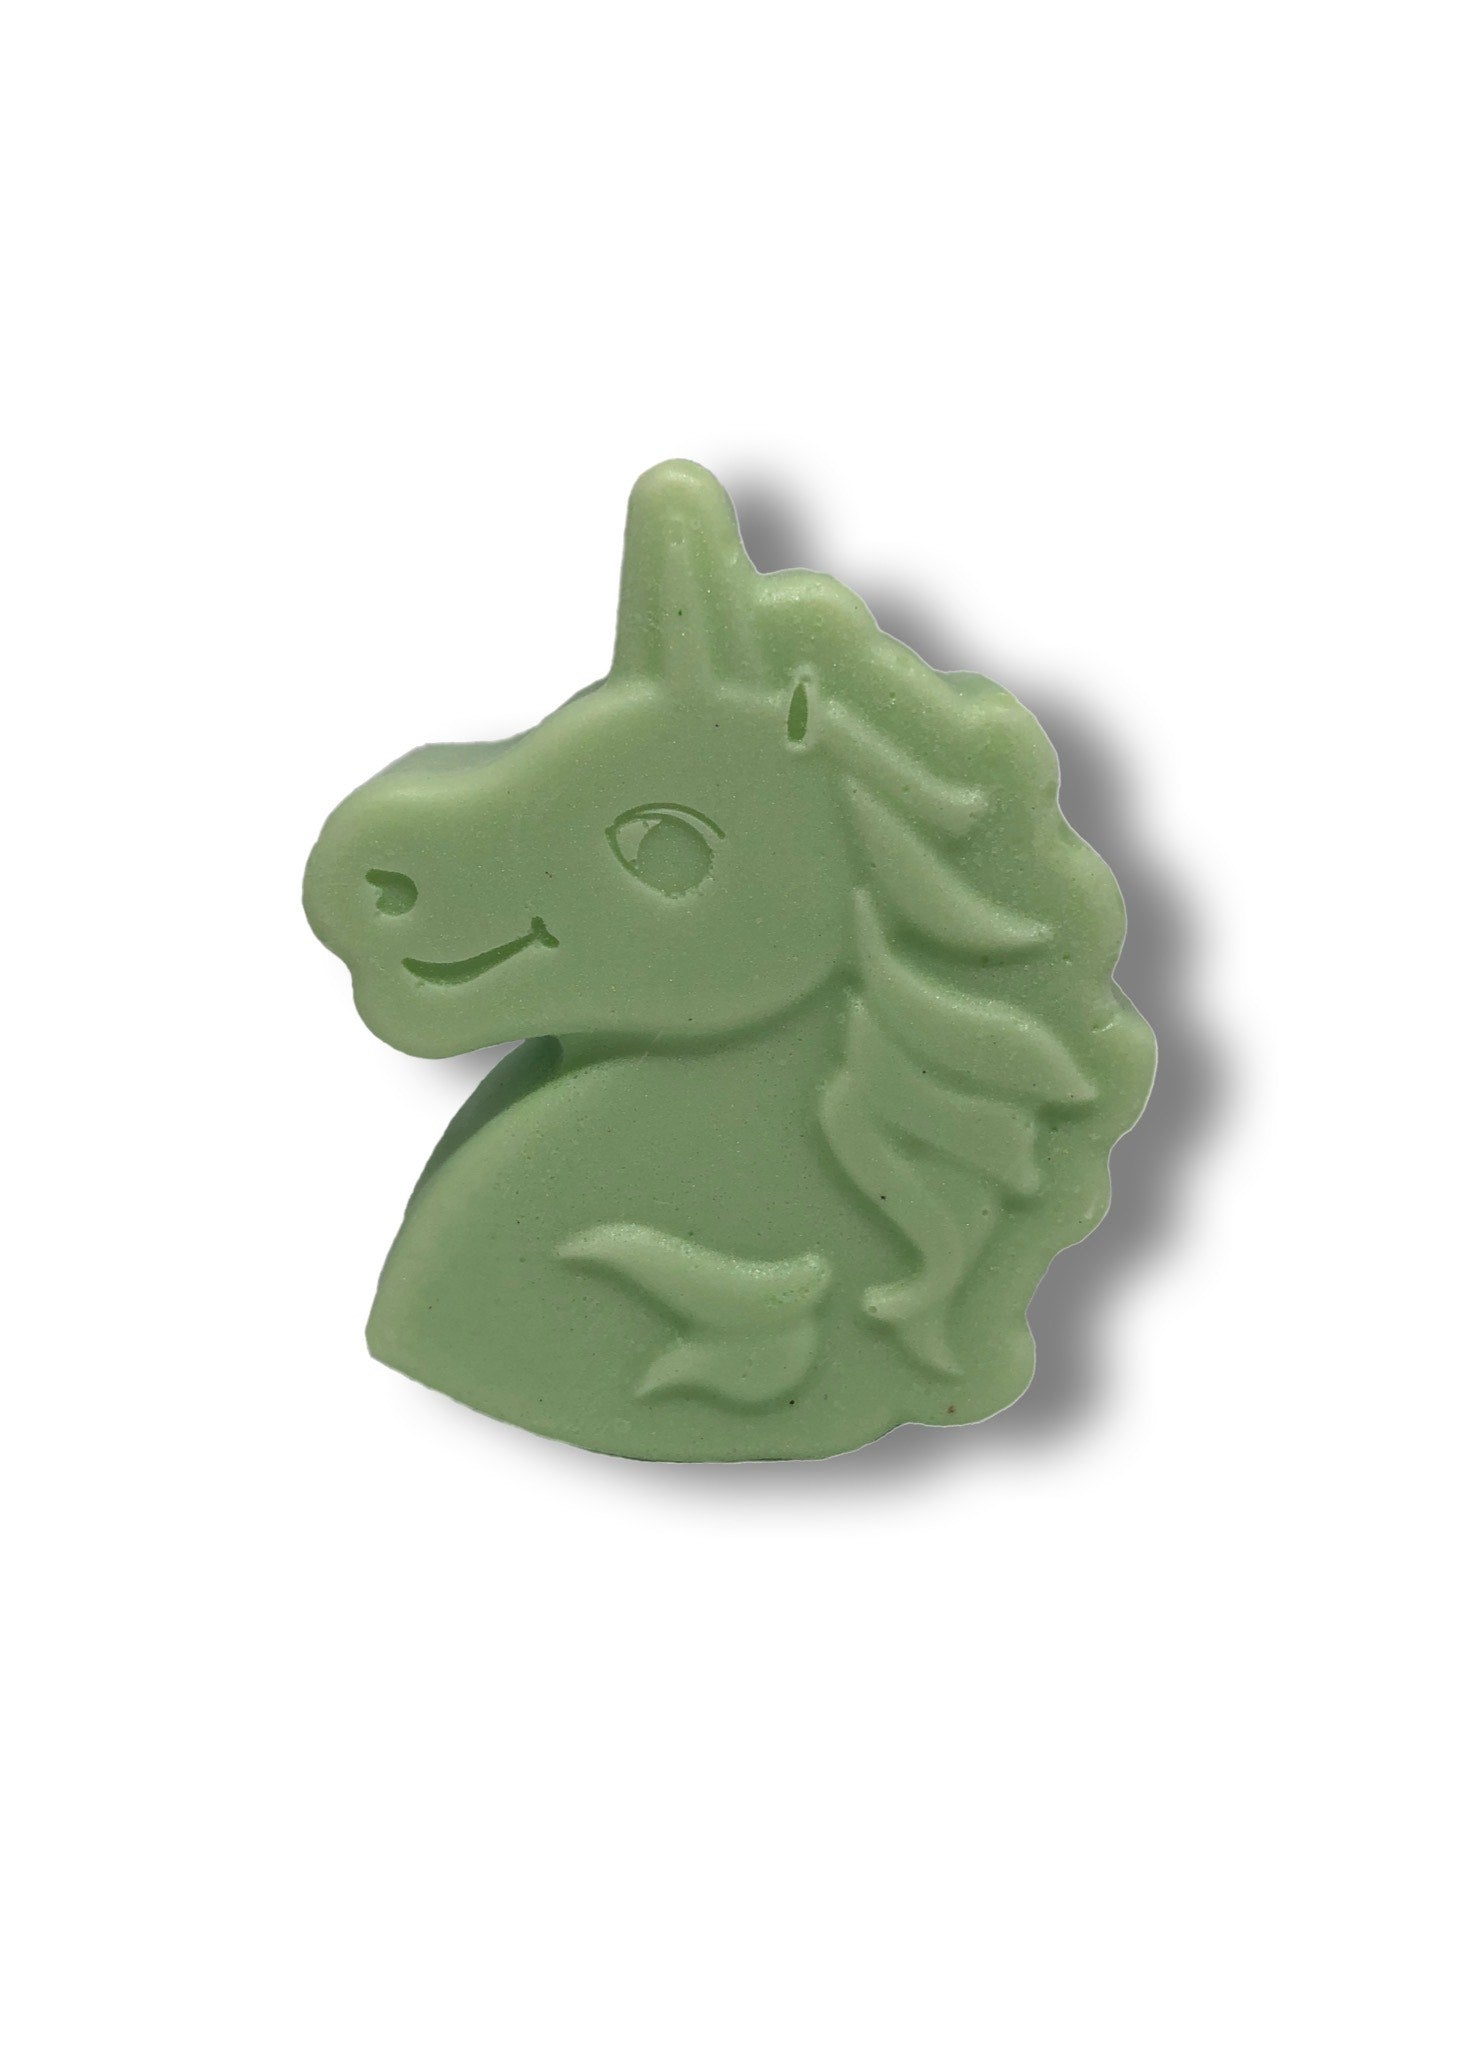 Honeydew Melon Unicorn Soap